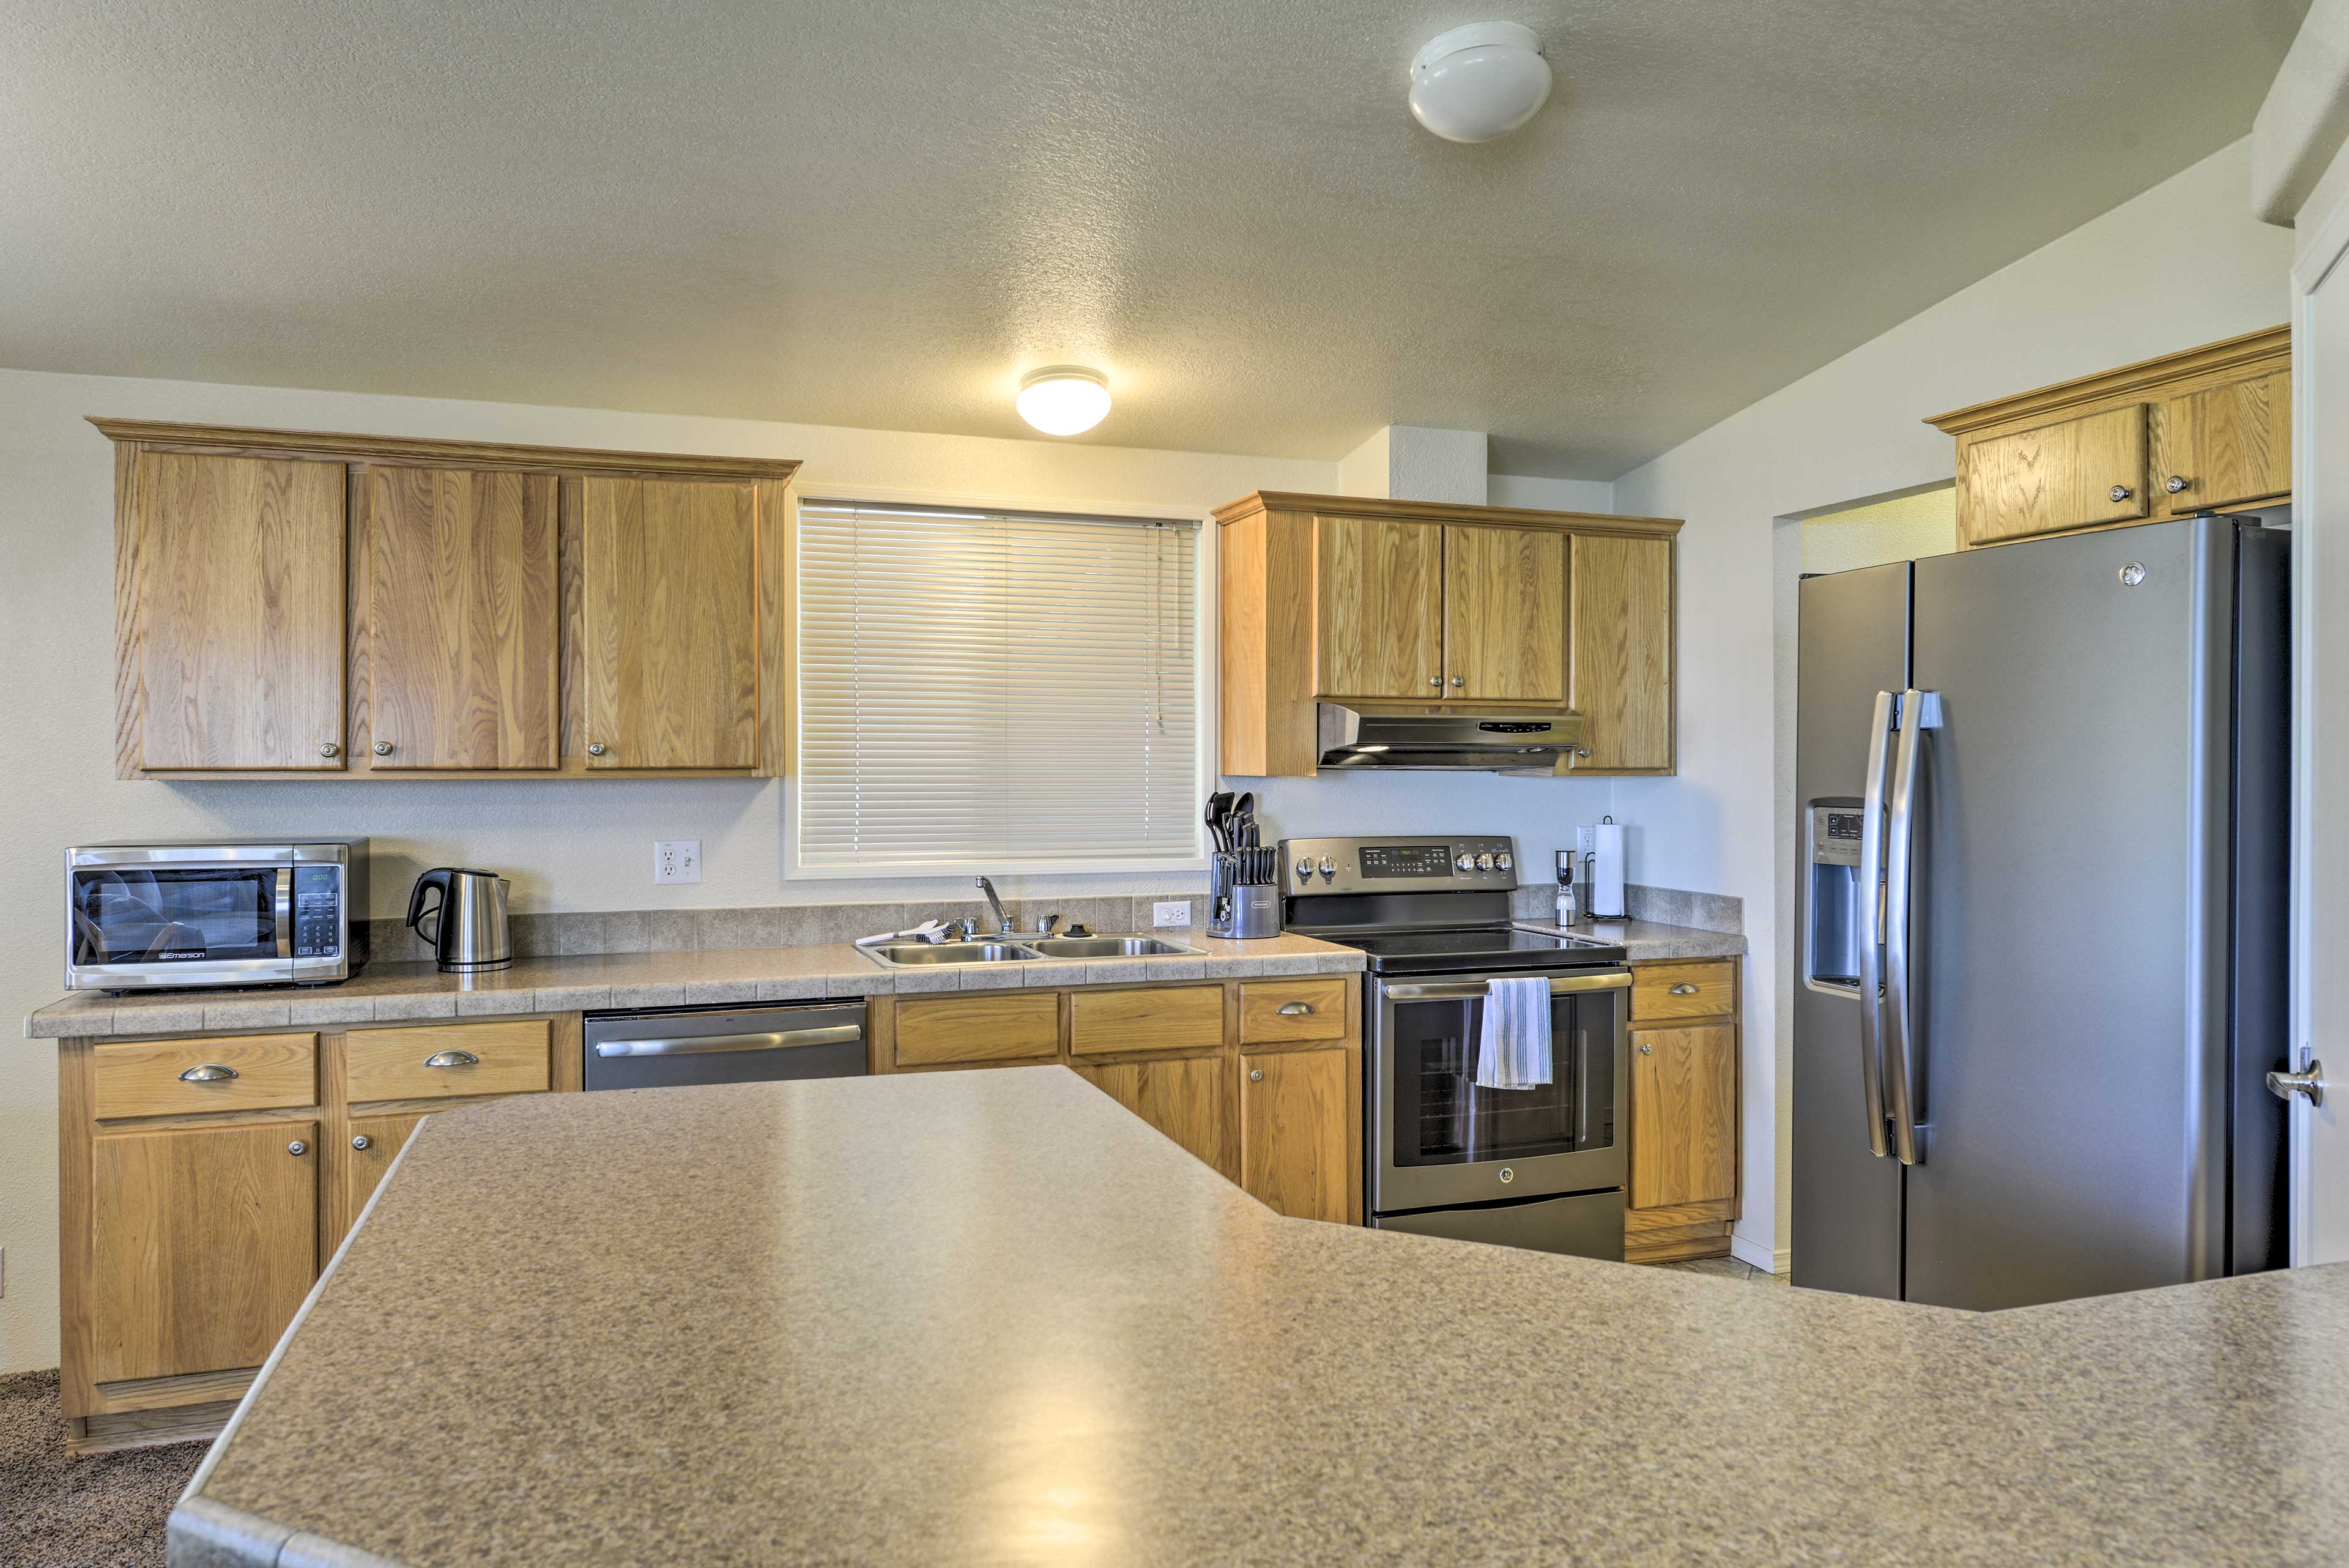 Whip up a 5-star feast with the stainless steel appliances.